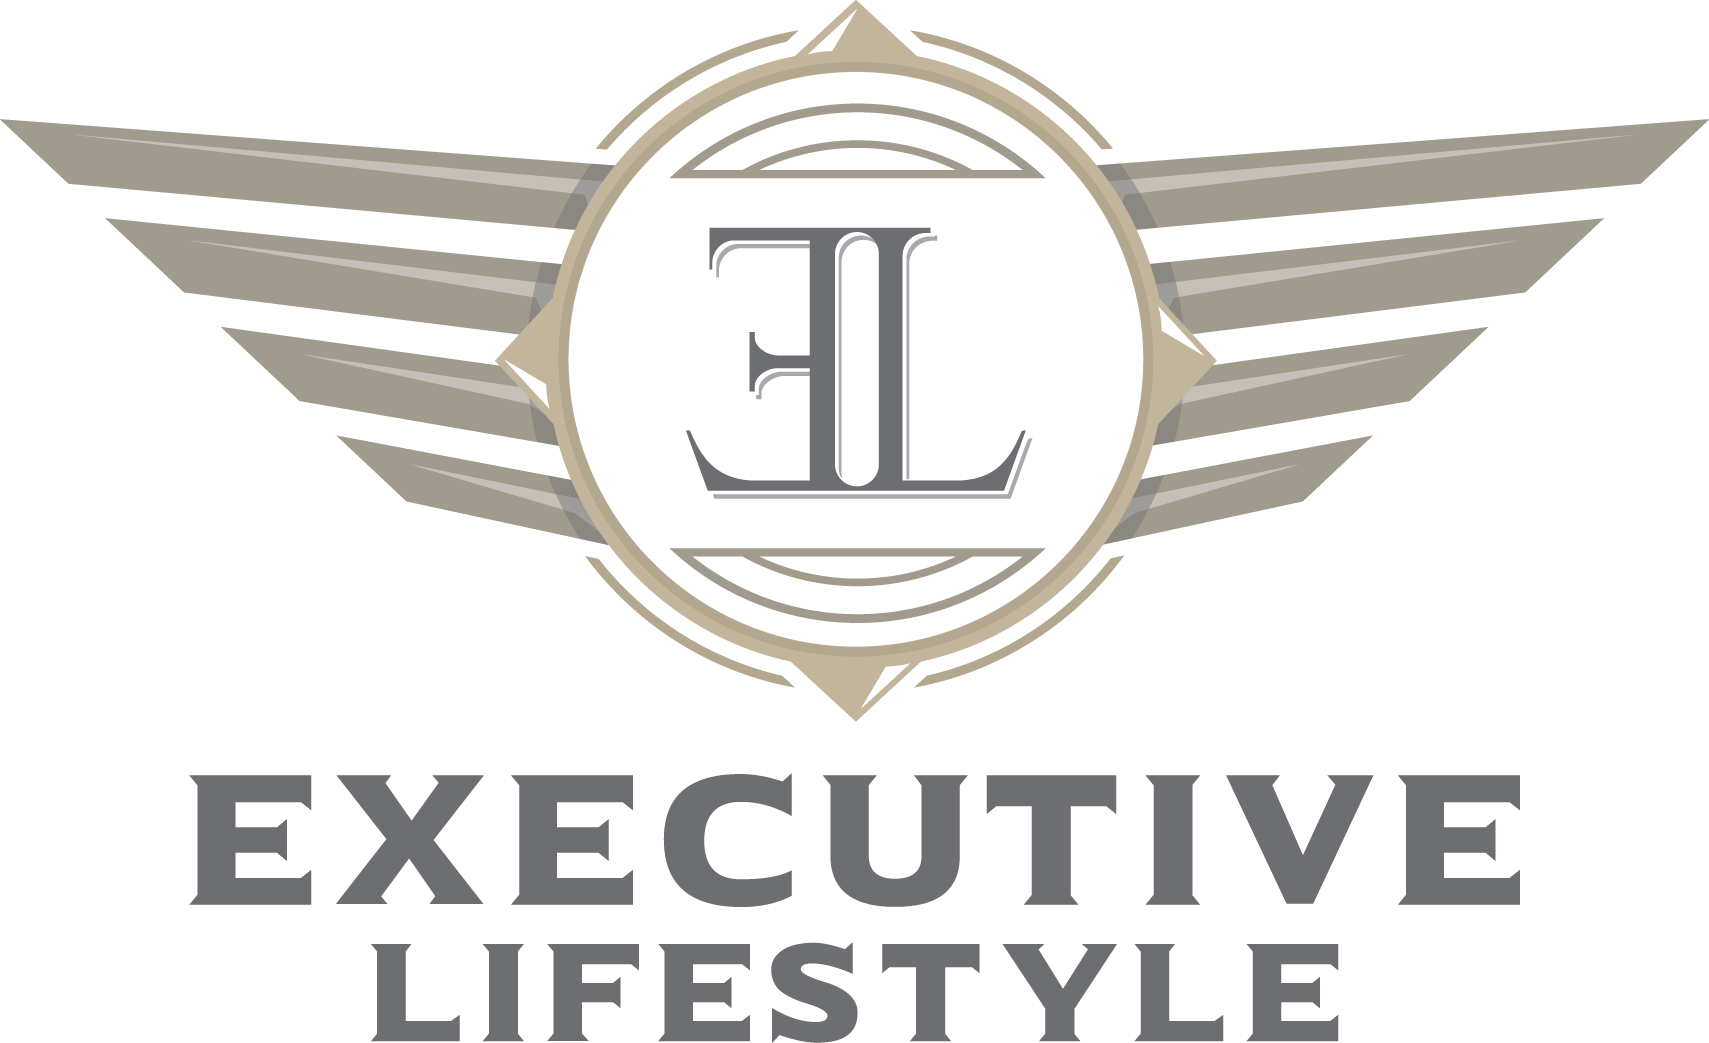 Executive Lifestyle - Private Jet Charter Service | The Complete Luxury Tourism Partner including Private Jet whether it is Online or Offline